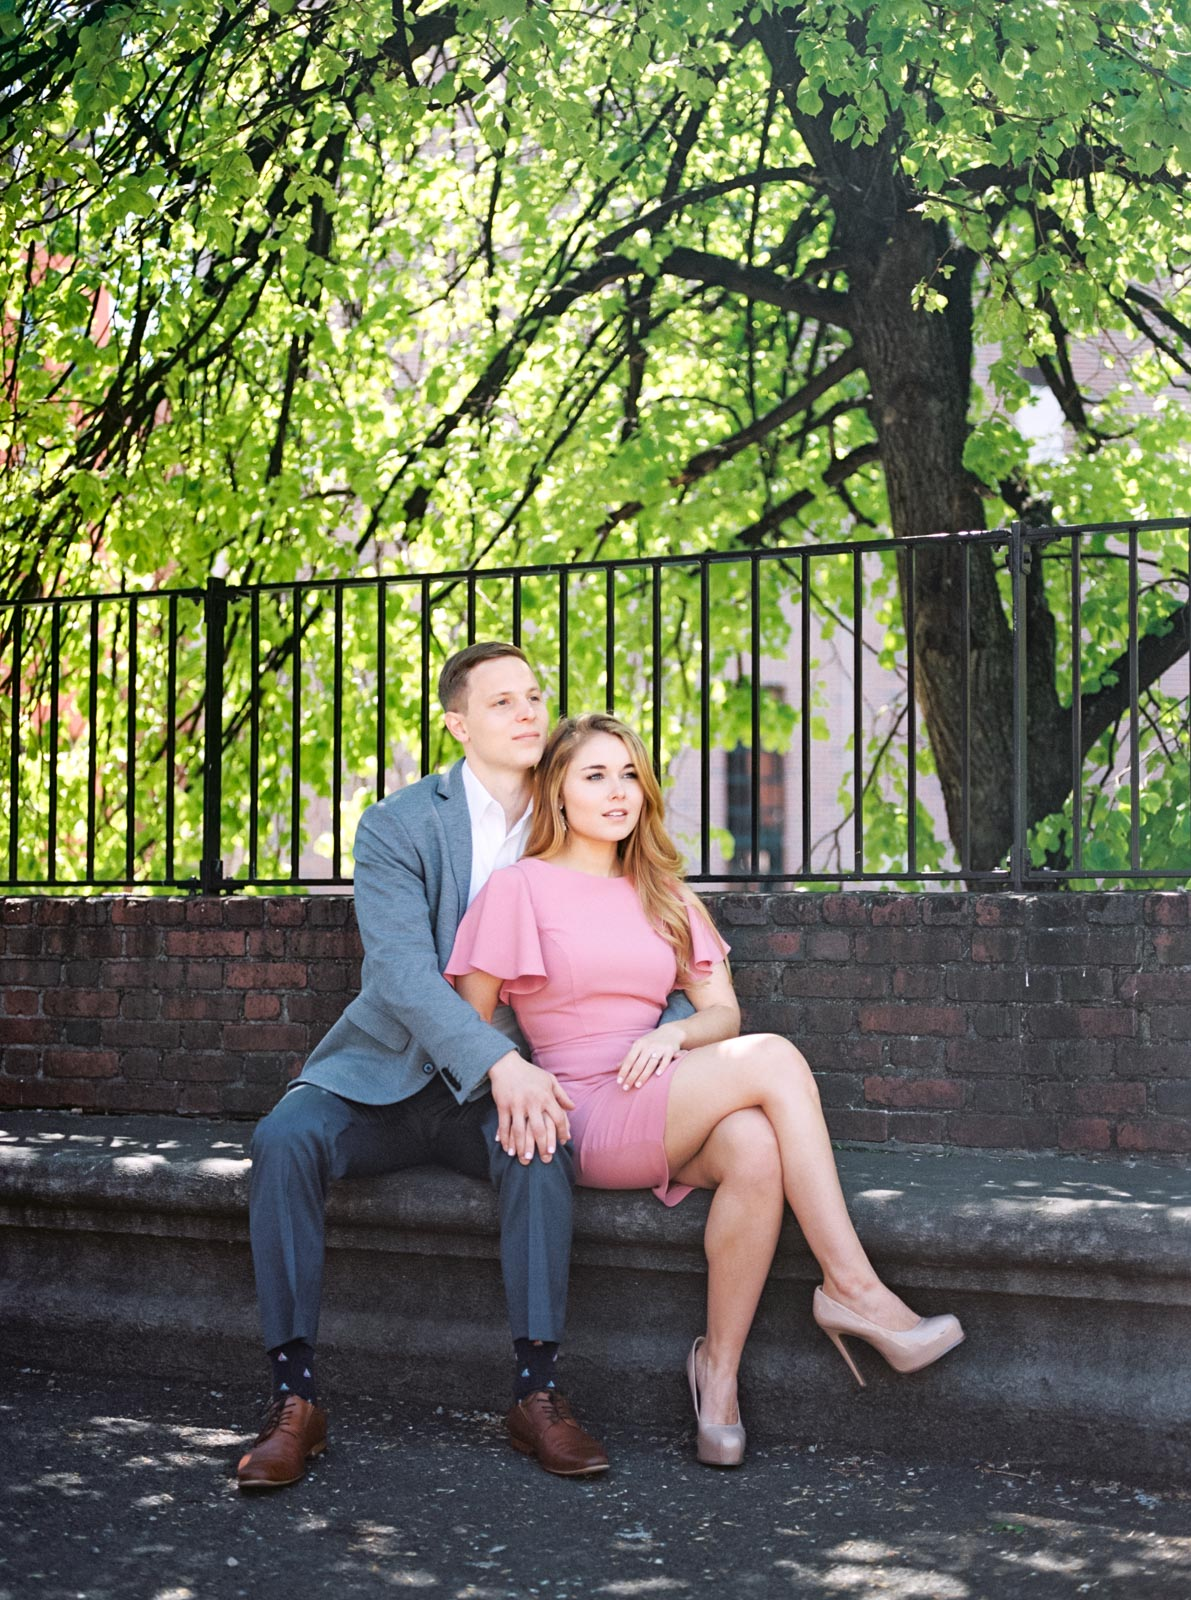 Stylish Summer Engagement Session in Downtown Boston-18.jpg